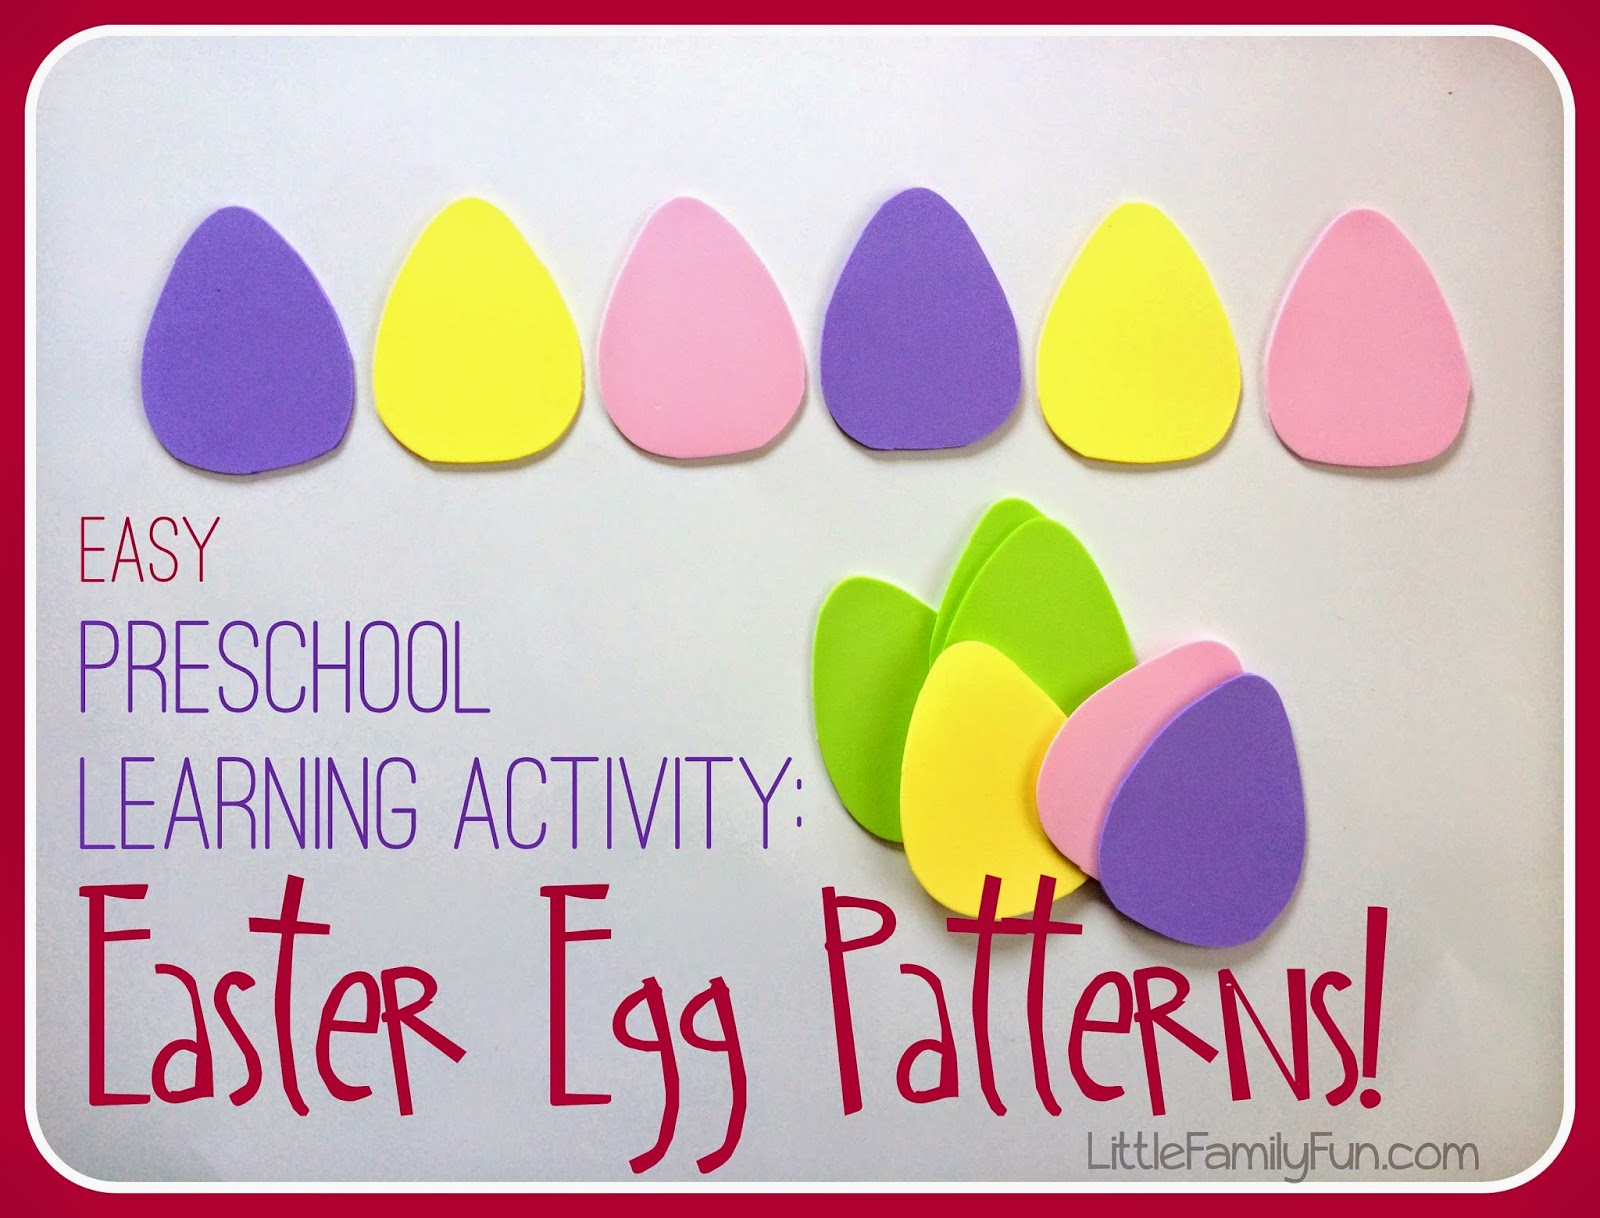 http://www.littlefamilyfun.com/2014/04/easter-egg-patterns.html